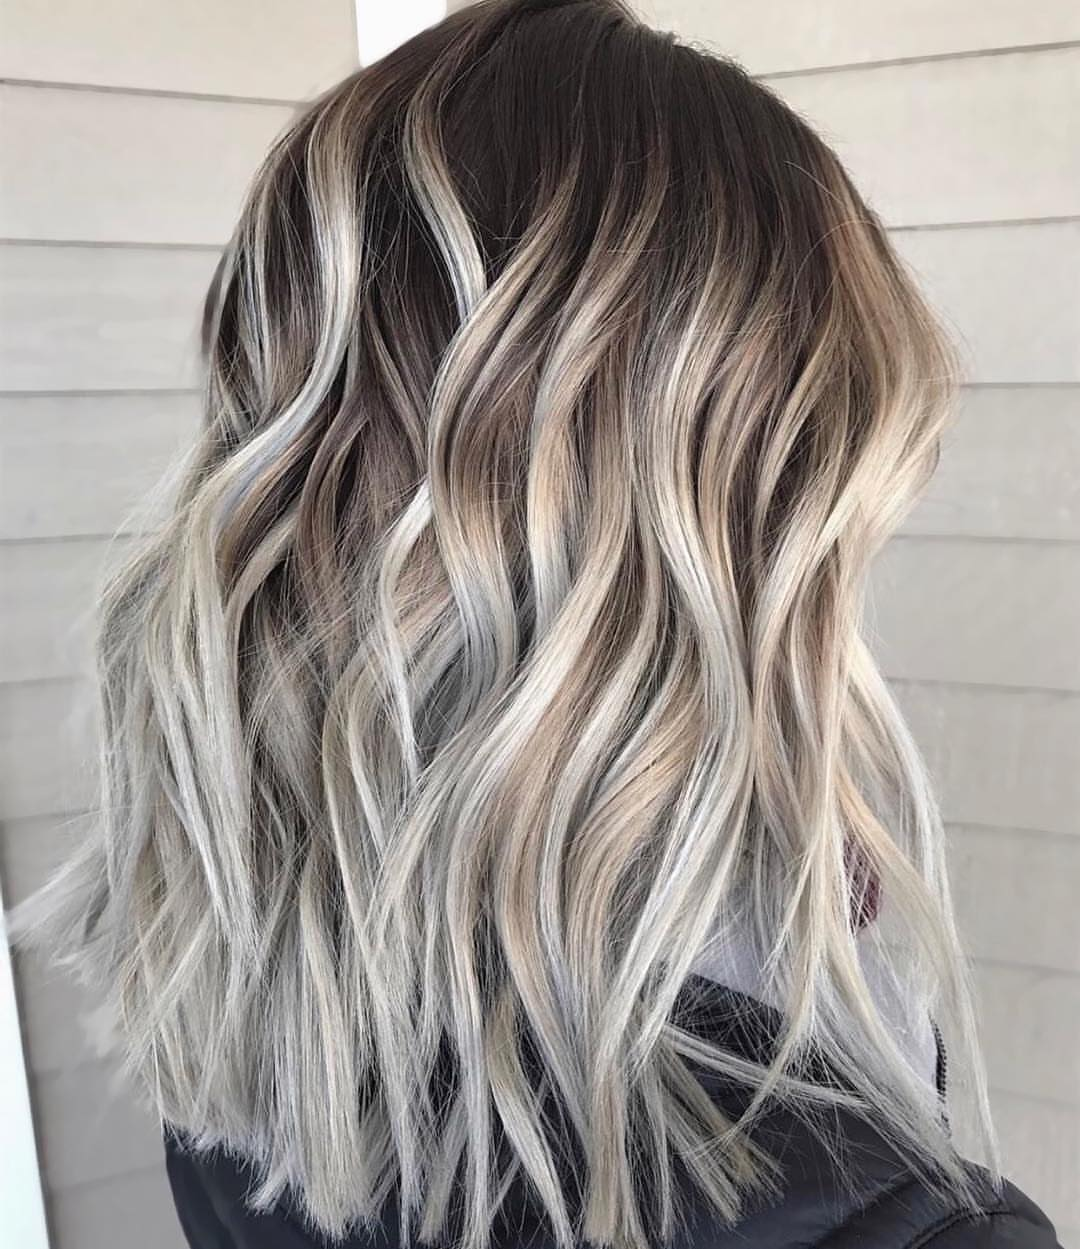 50 Hottest Ombre Hair Color Ideas for 2018     Ombre Hairstyles     Hottest Ombre Hair Color Ideas for 2018   Ombre Hairstyles